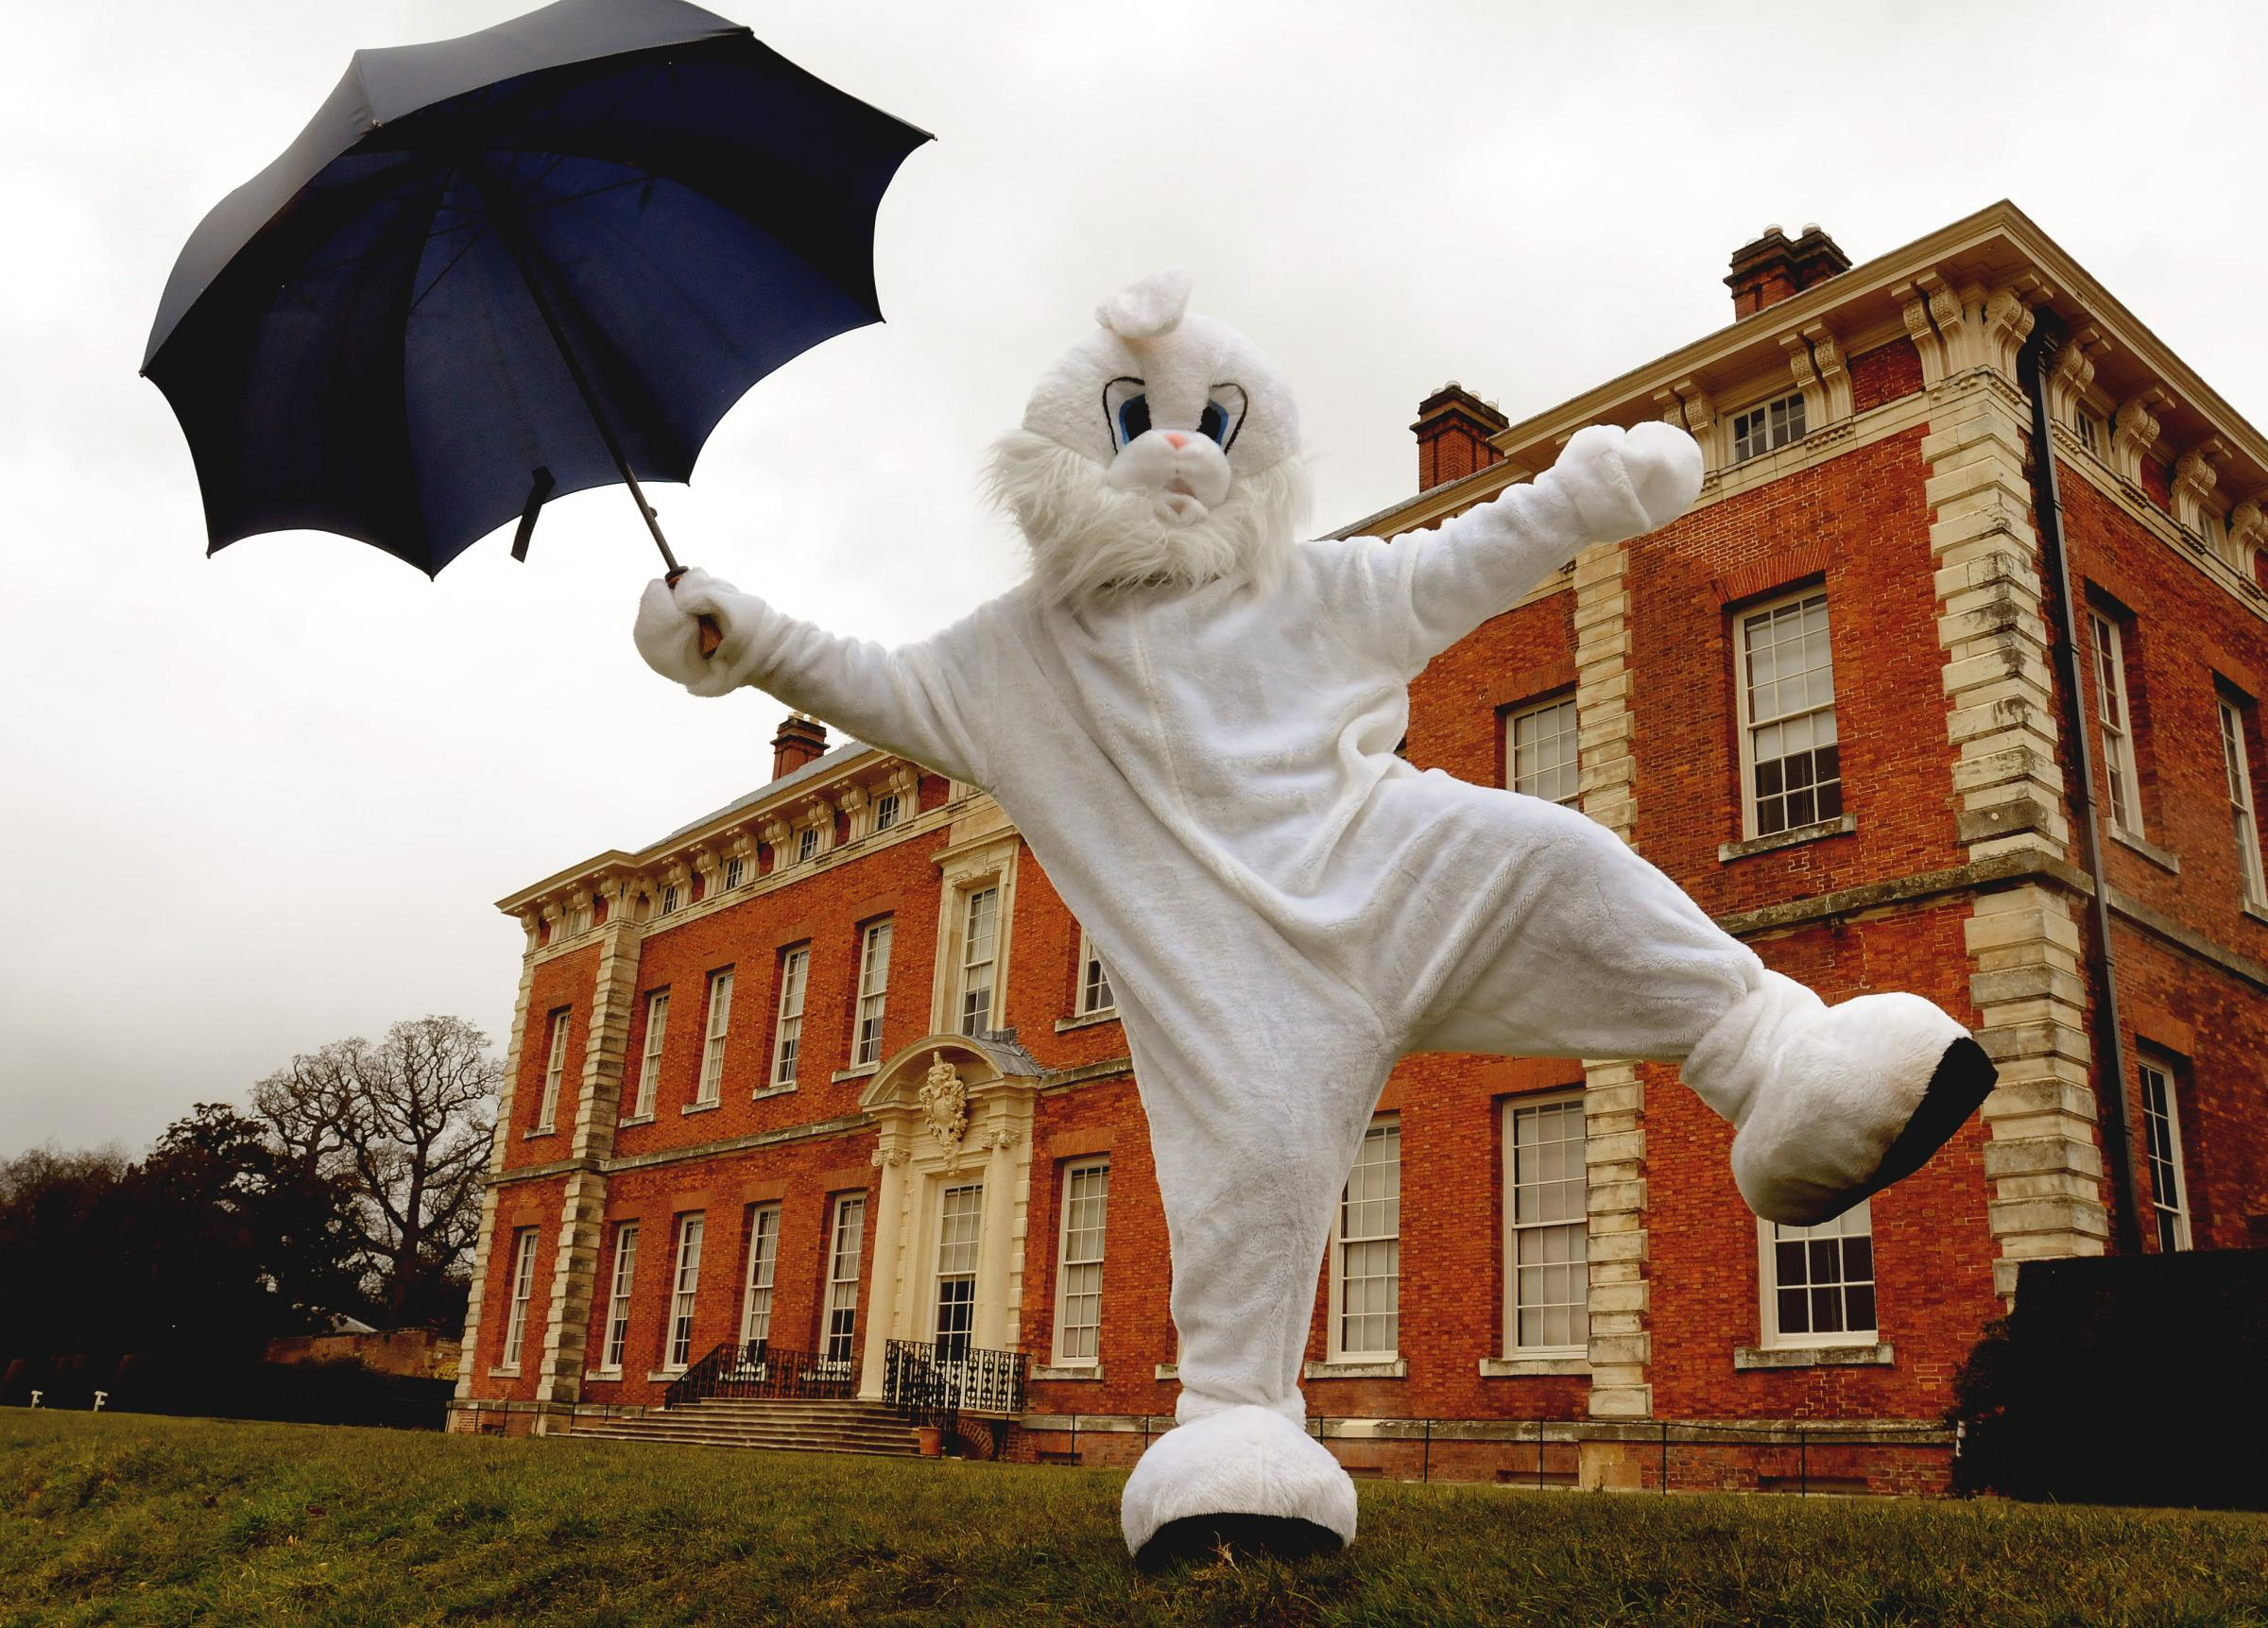 FUNNY BUNNY: The Easter Bunny will again be leading egg trails at Benningbrough Hall